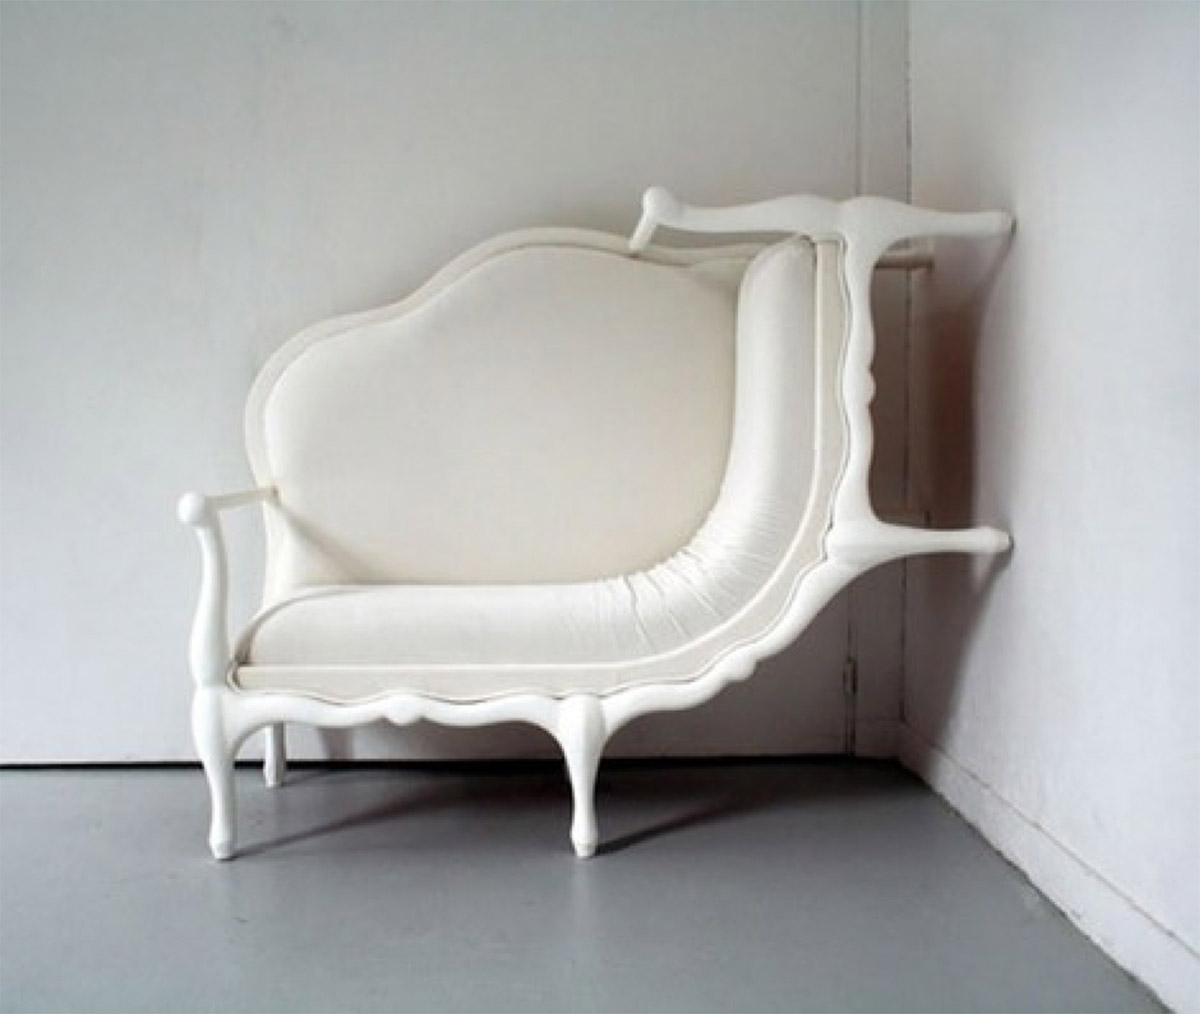 Surreal French Furniture Design Lila Jang 01